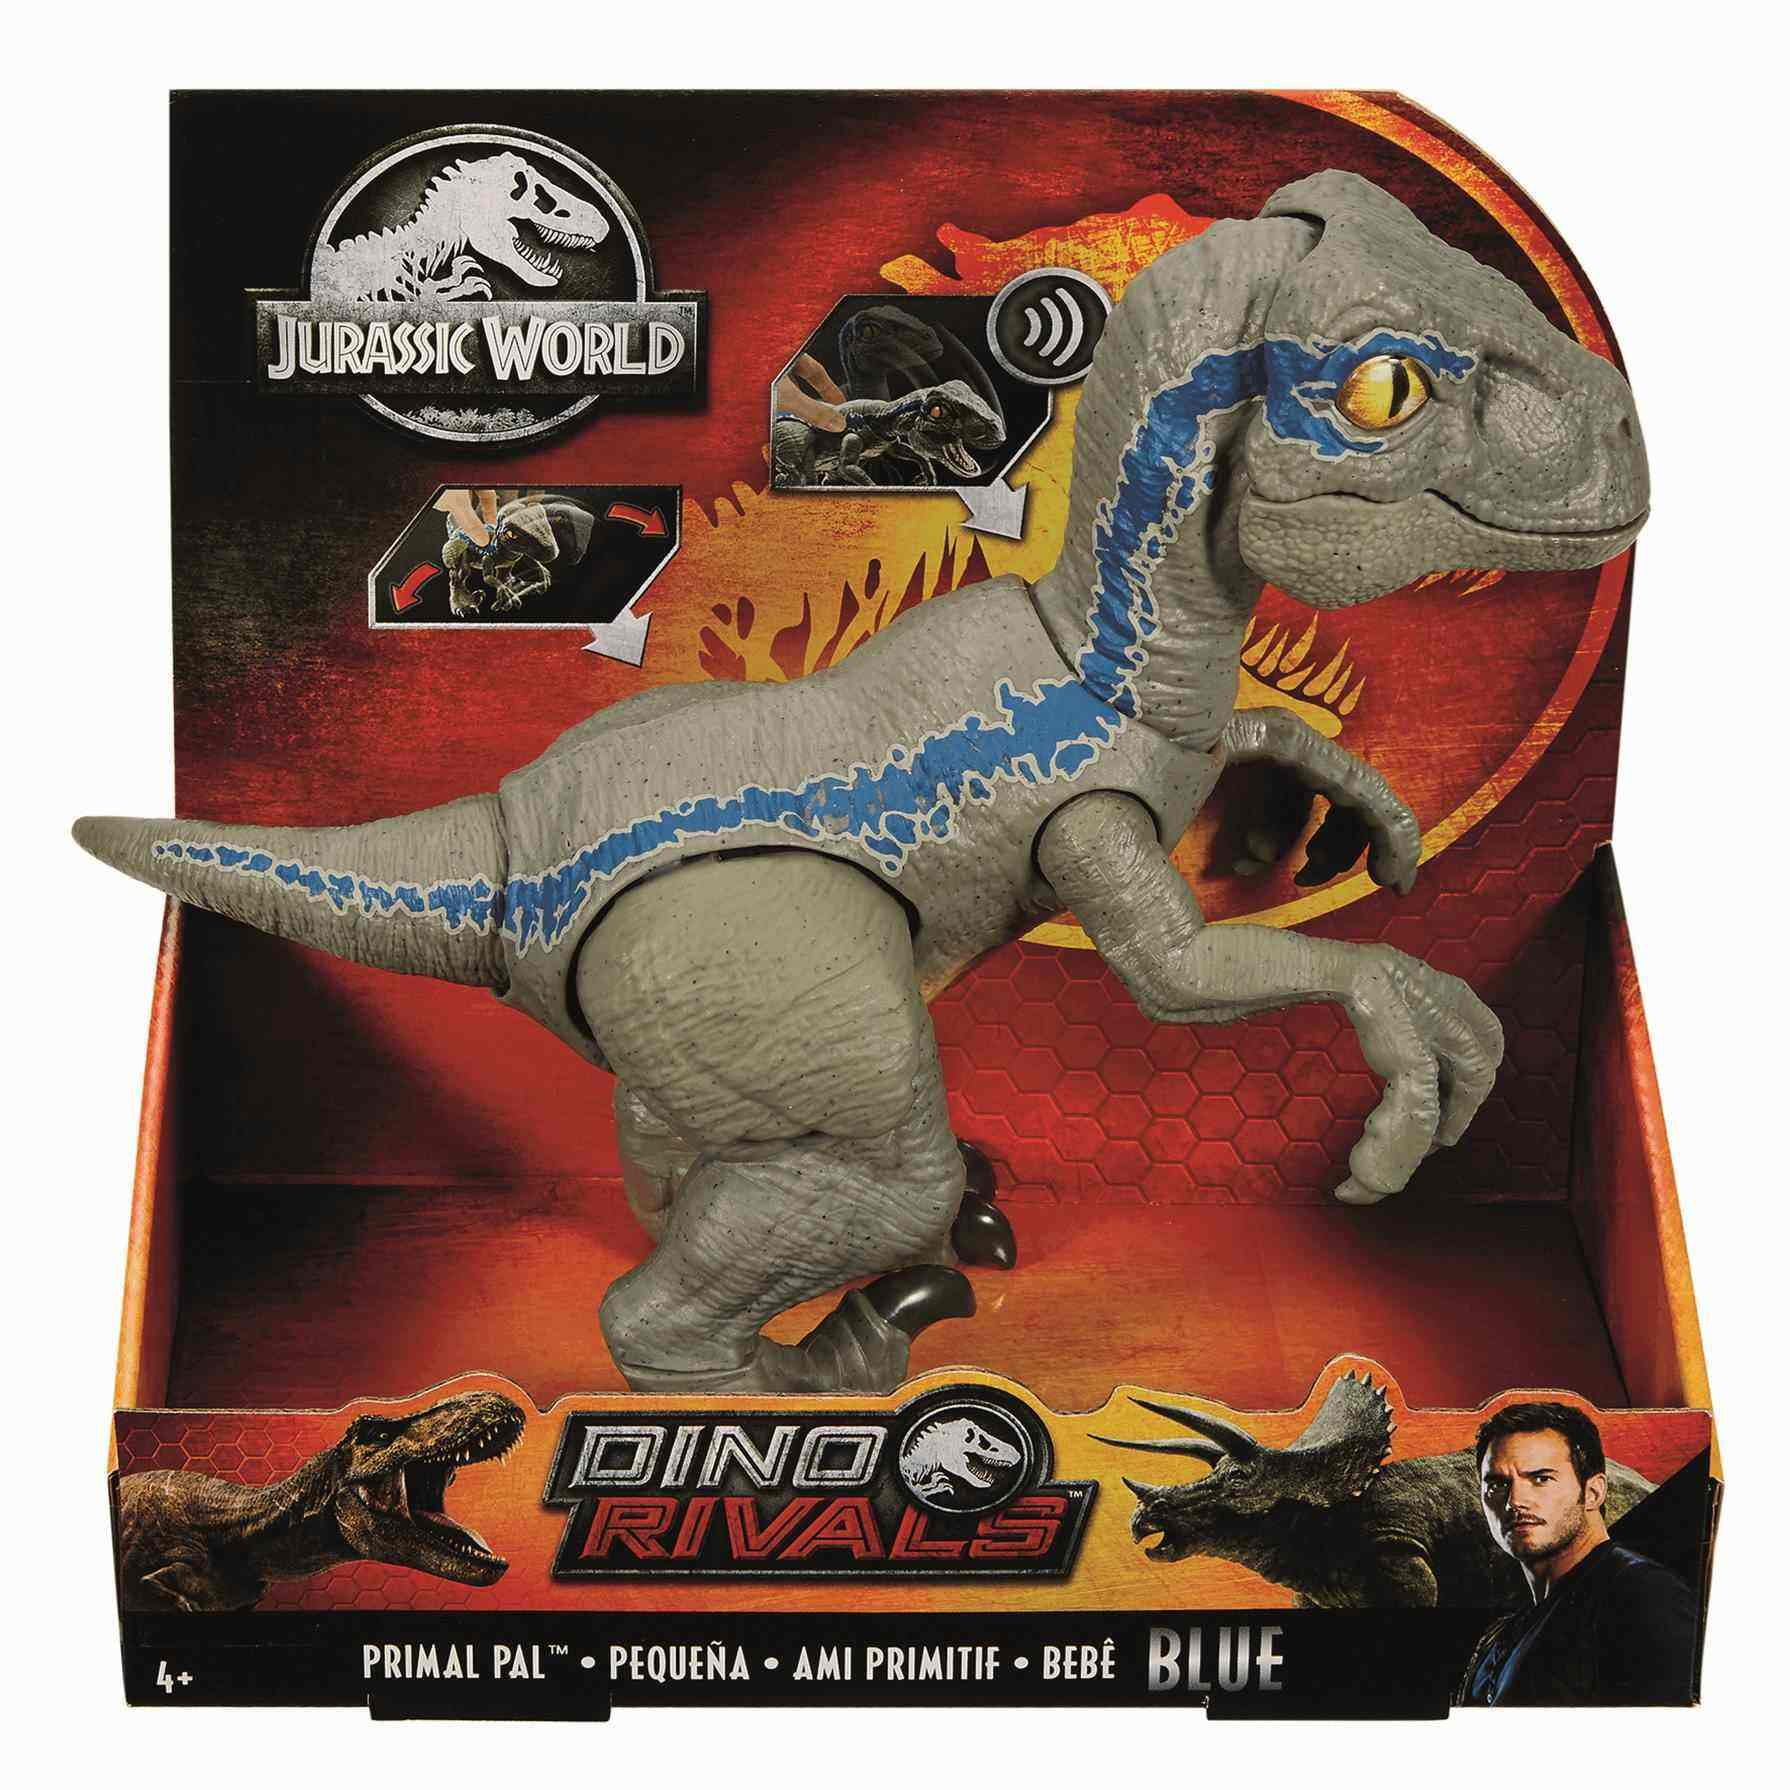 Jurassic World Amigo primigenio Blue